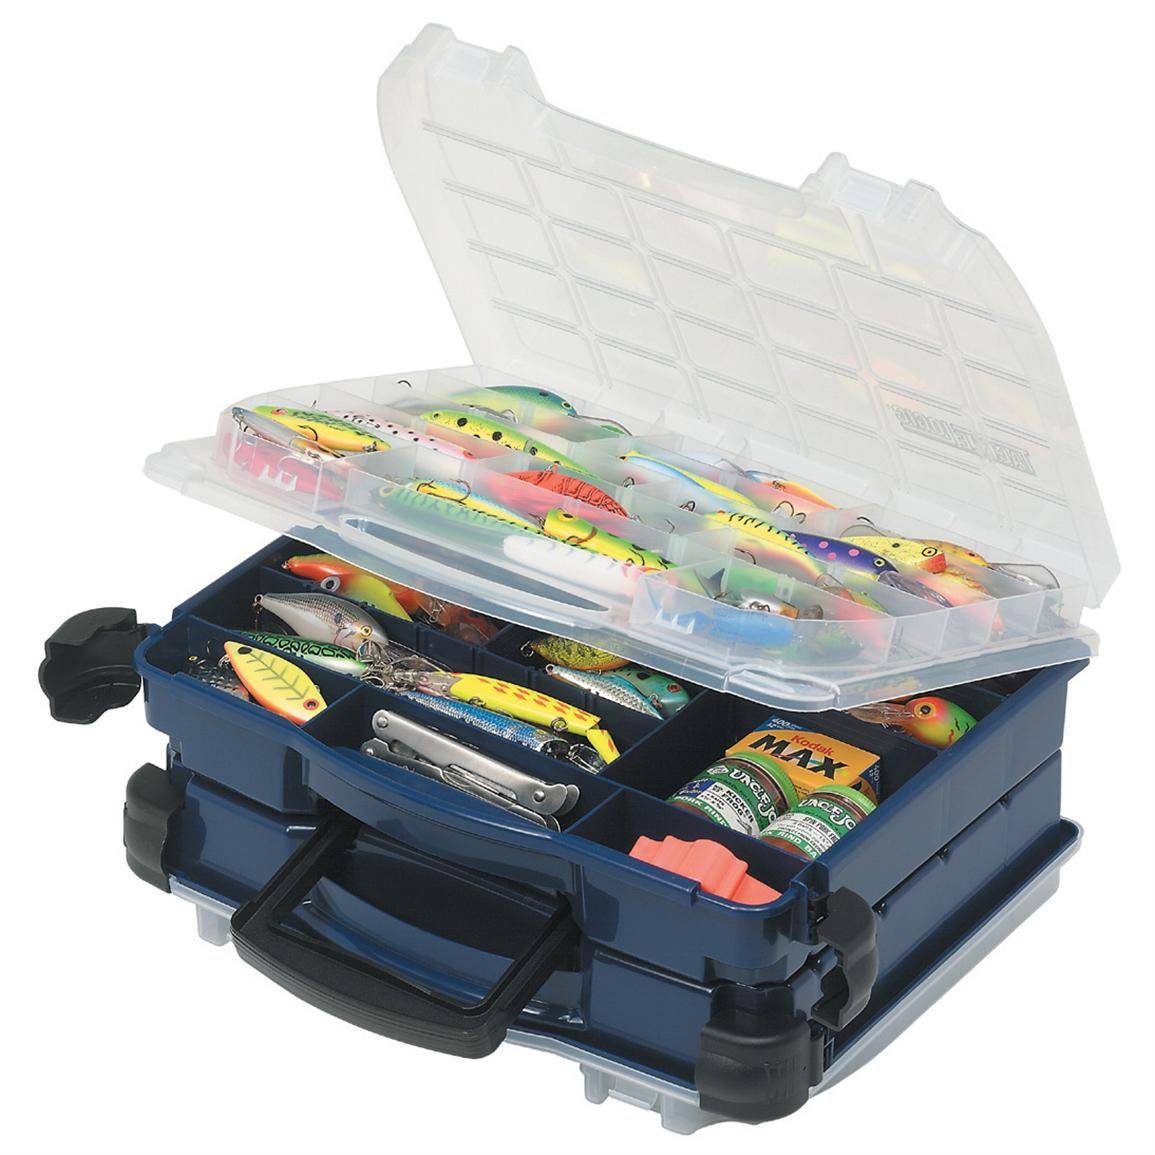 Plano® 3952 Double Cover 2-sided Organizer